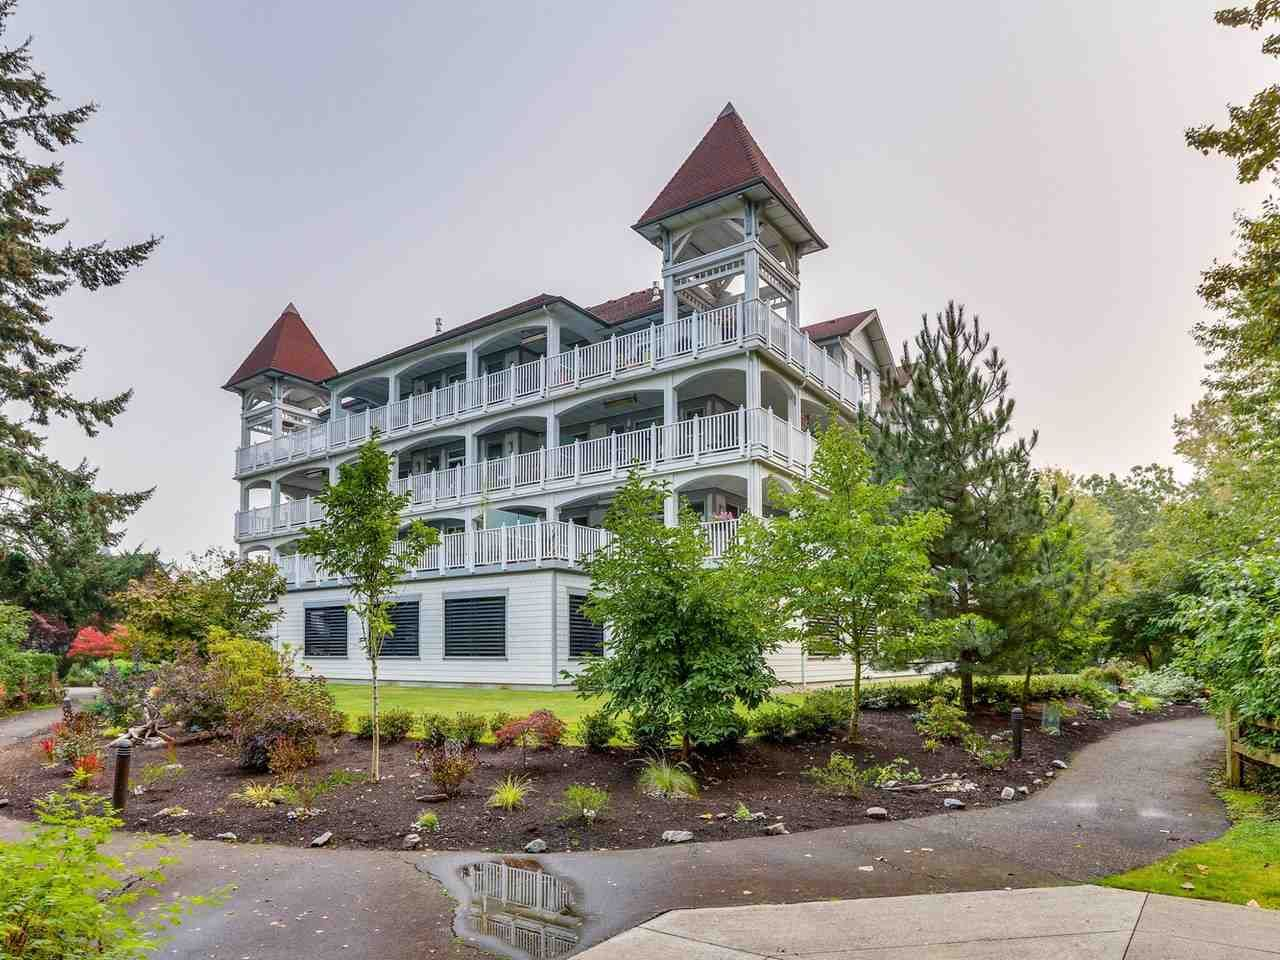 """Main Photo: 305 6251 RIVER Road in Ladner: Tilbury Condo for sale in """"RIVER WATCH"""" : MLS®# R2499840"""